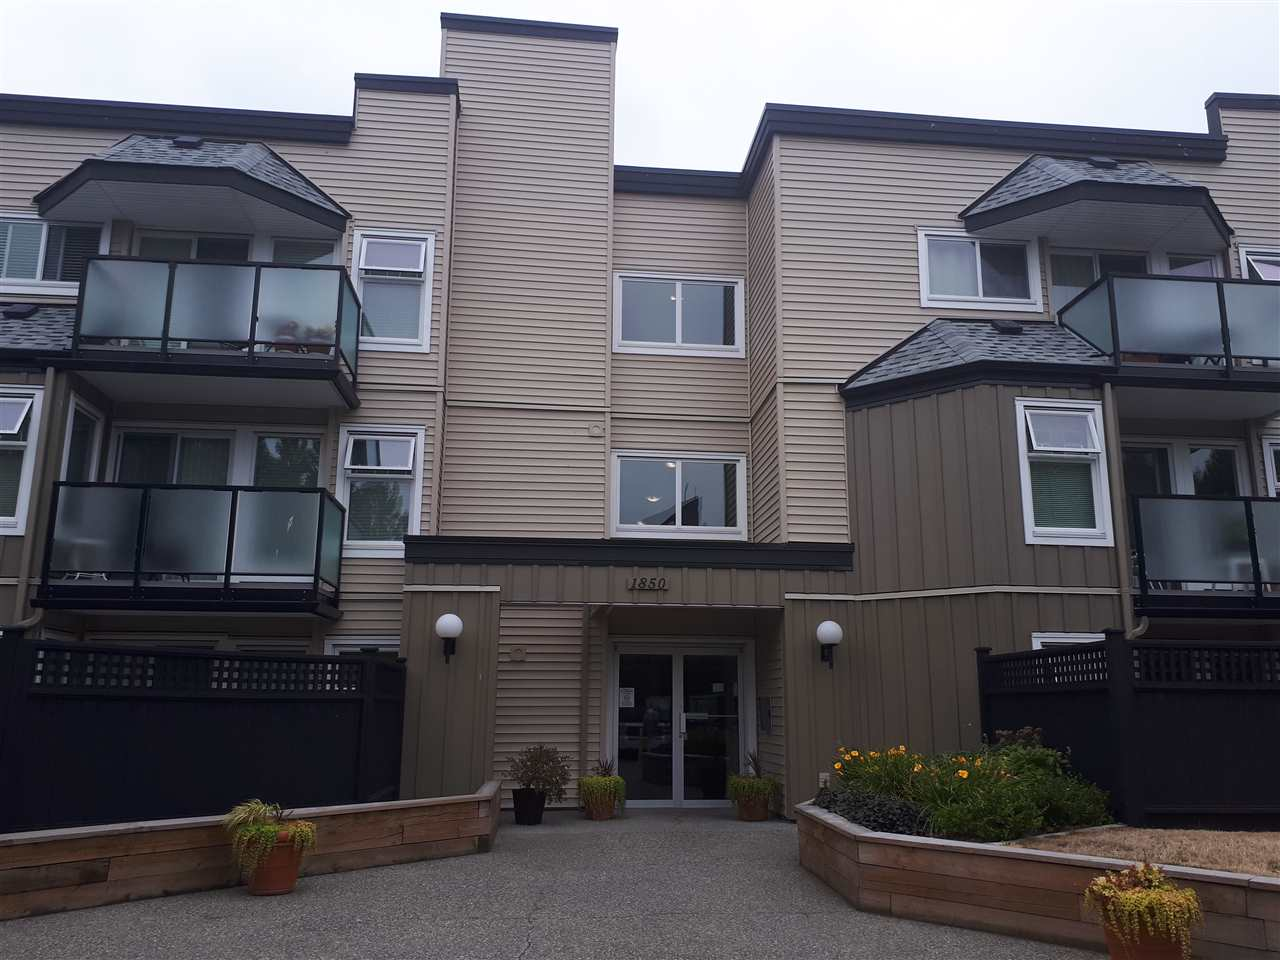 Welcome home to Southmere Place! Spacious & bright 1 BDRM unit, with lots of natural light. Centrally located in South Surrey/White Rock. Well maintained building with new roof in 2009, new boiler in 2007, new elevator in 2018, fully RAINSCREENED in 2015 and hallways were repainted & re-carpeted Excellent investment opportunity. No rental or age restrictions in this building, with a healthy contingency fund. Cross the street to catch a bus to Bridgeport station and take the Canada line right Downtown.  Located just steps from White Rock Town Centre, Semiahmoo Library, Semiahmoo Mall, and multiple shops of all variety.  In close proximity to White Rock Beach, Crescent Beach, several golf courses and Peace Arch Border Crossing.